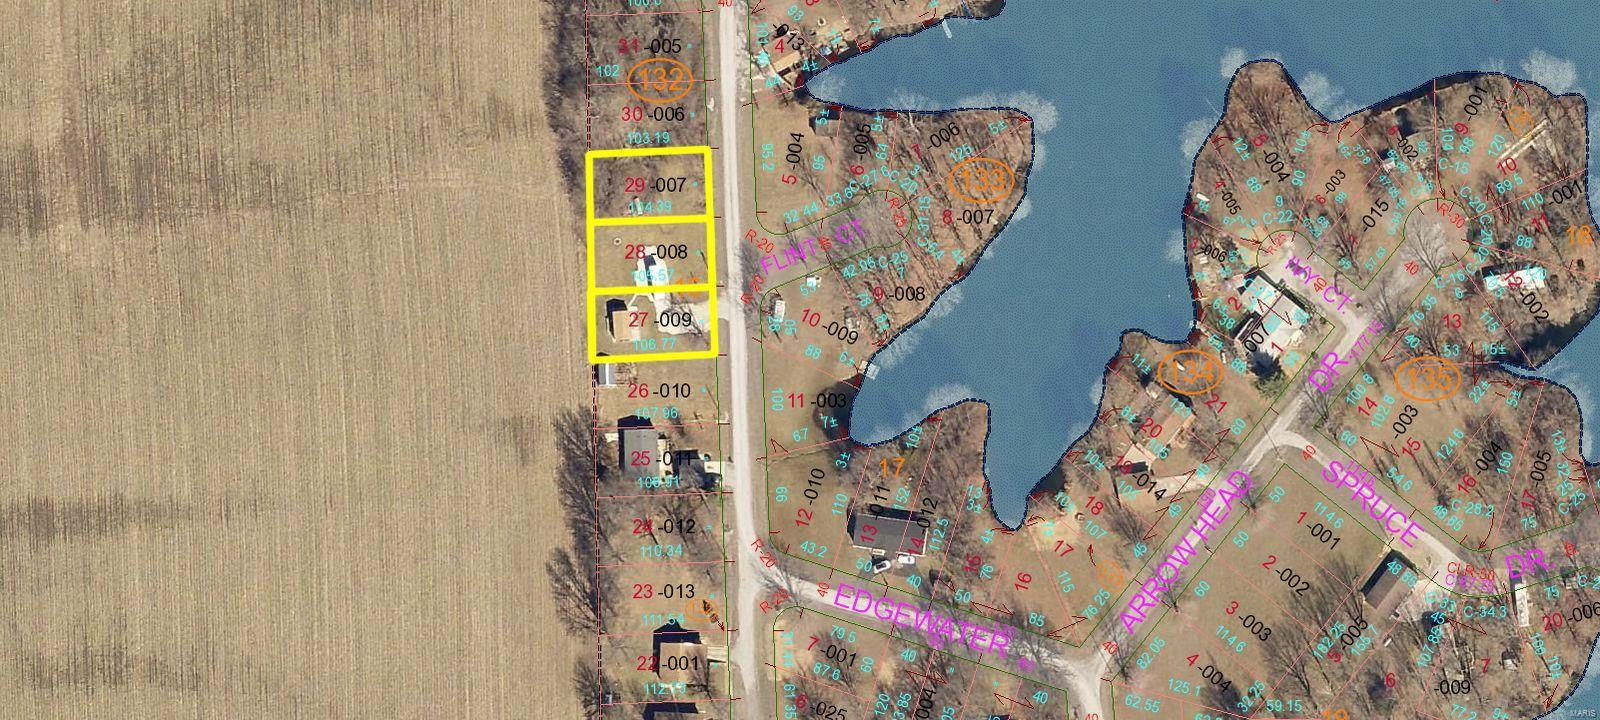 6735 W Fellin Drive Property Photo - Mount Olive, IL real estate listing